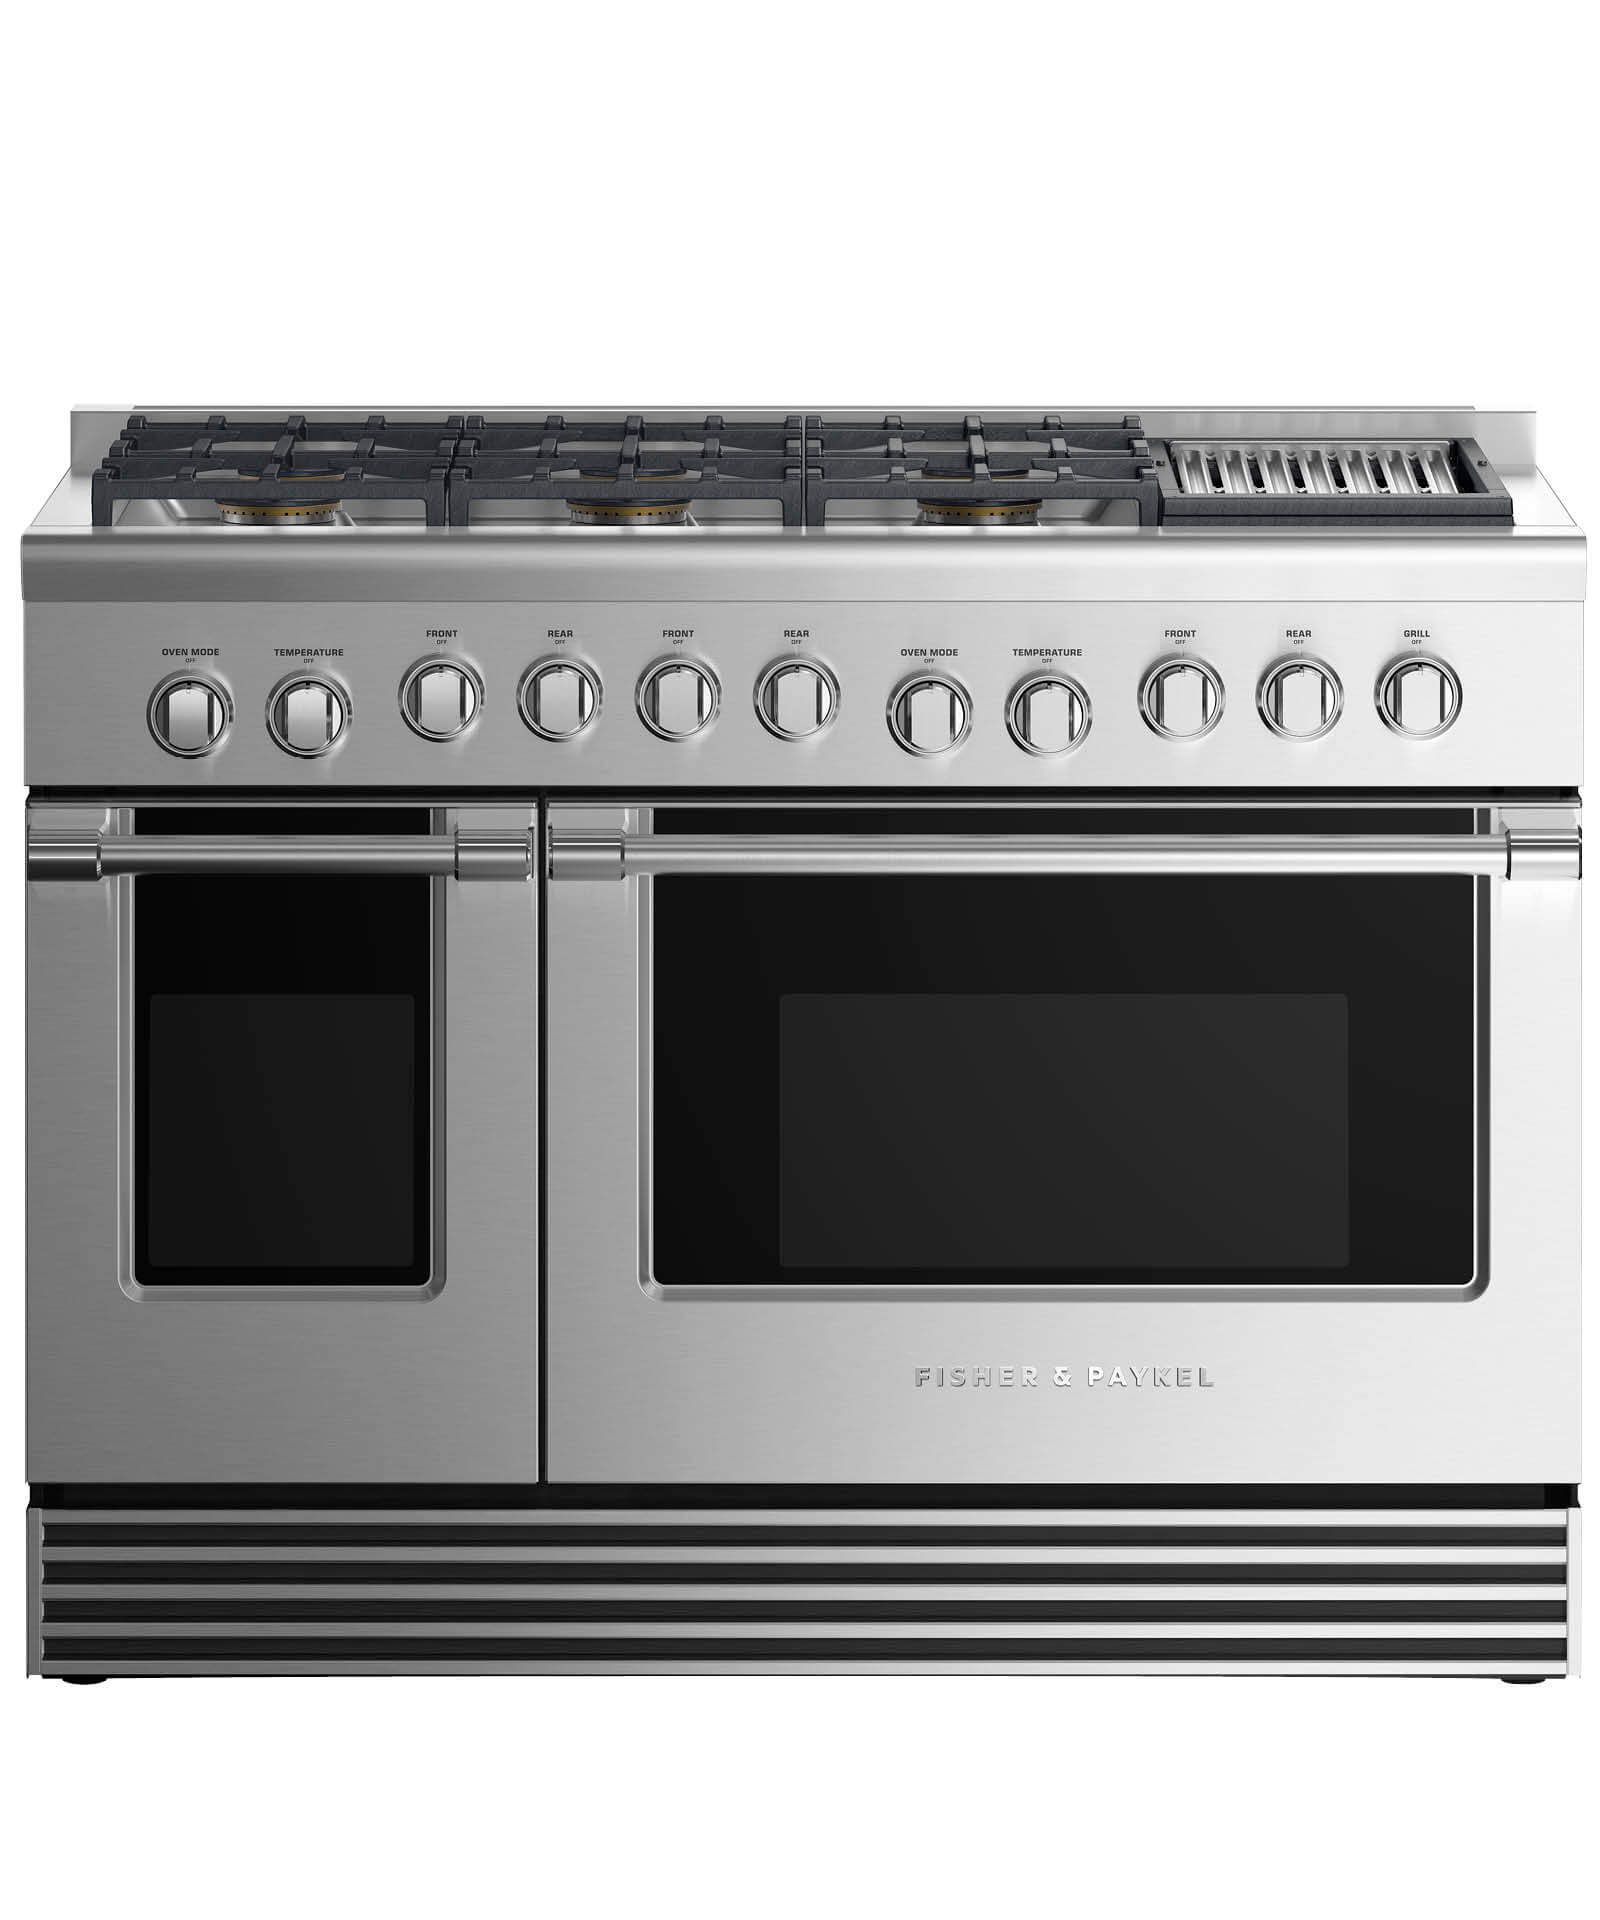 "Fisher and Paykel Gas Range 48"", 6 Burners with Grill"